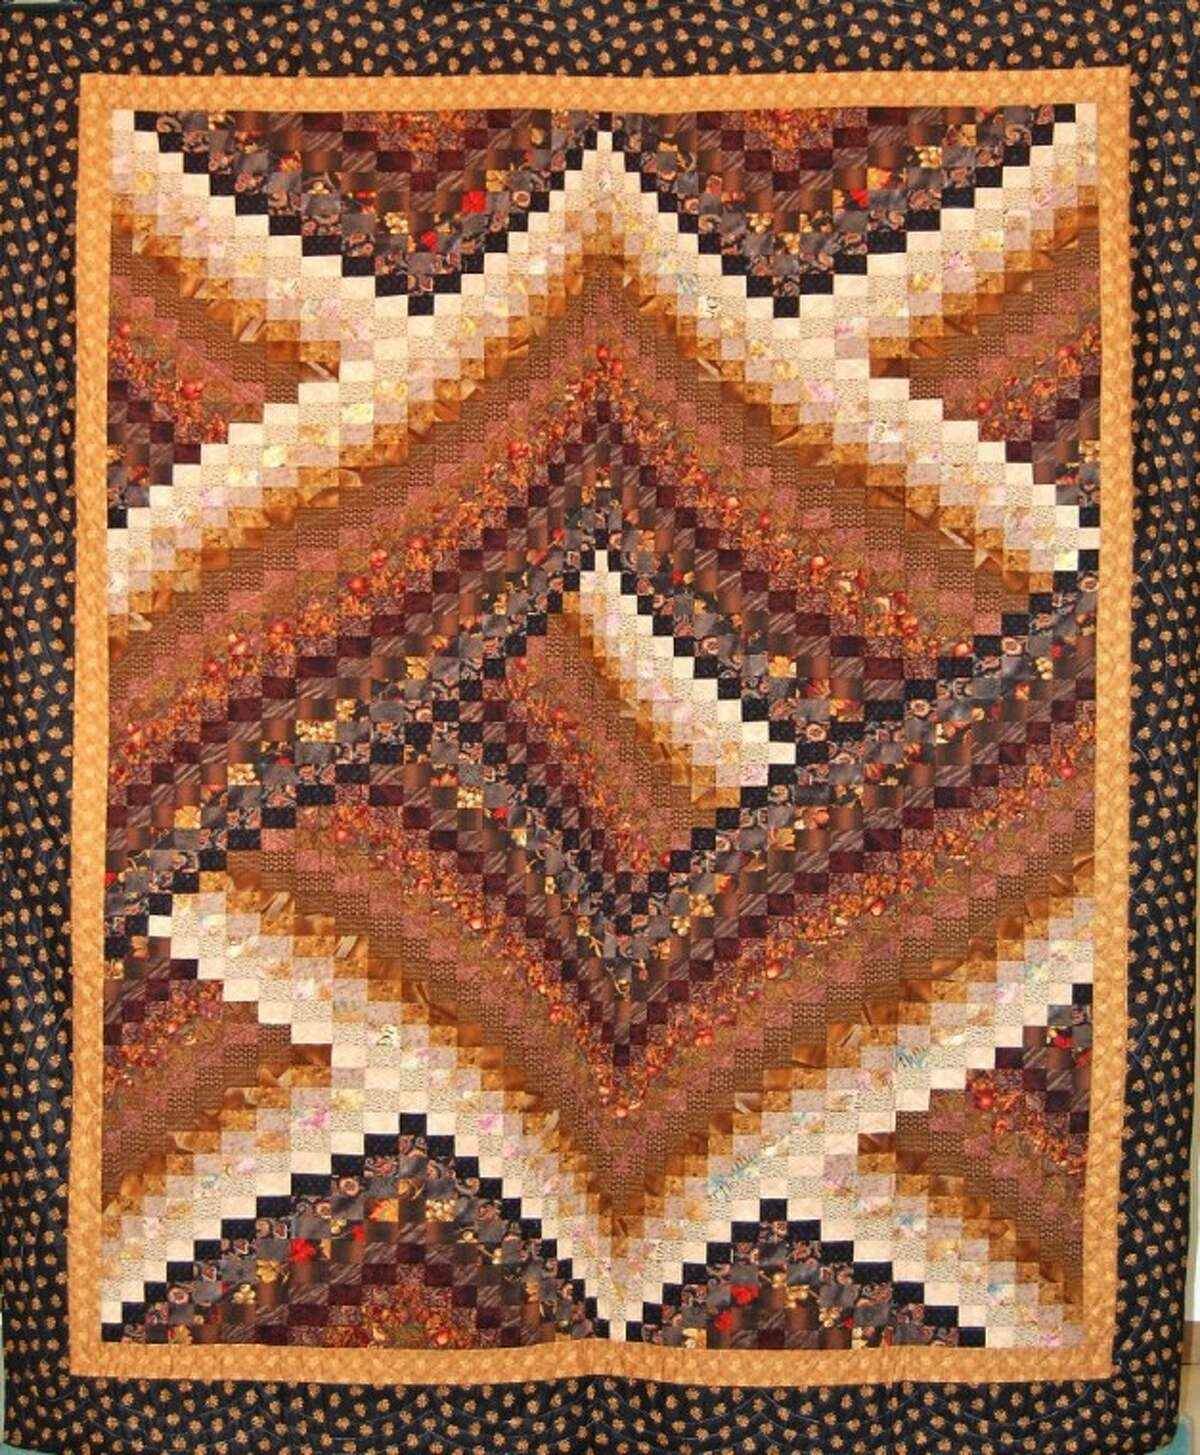 Galaxy Bargello, one of the quilts that will be auctioned at the Texas Mennonite Sale & Auction for World Relief on Nov. 10.